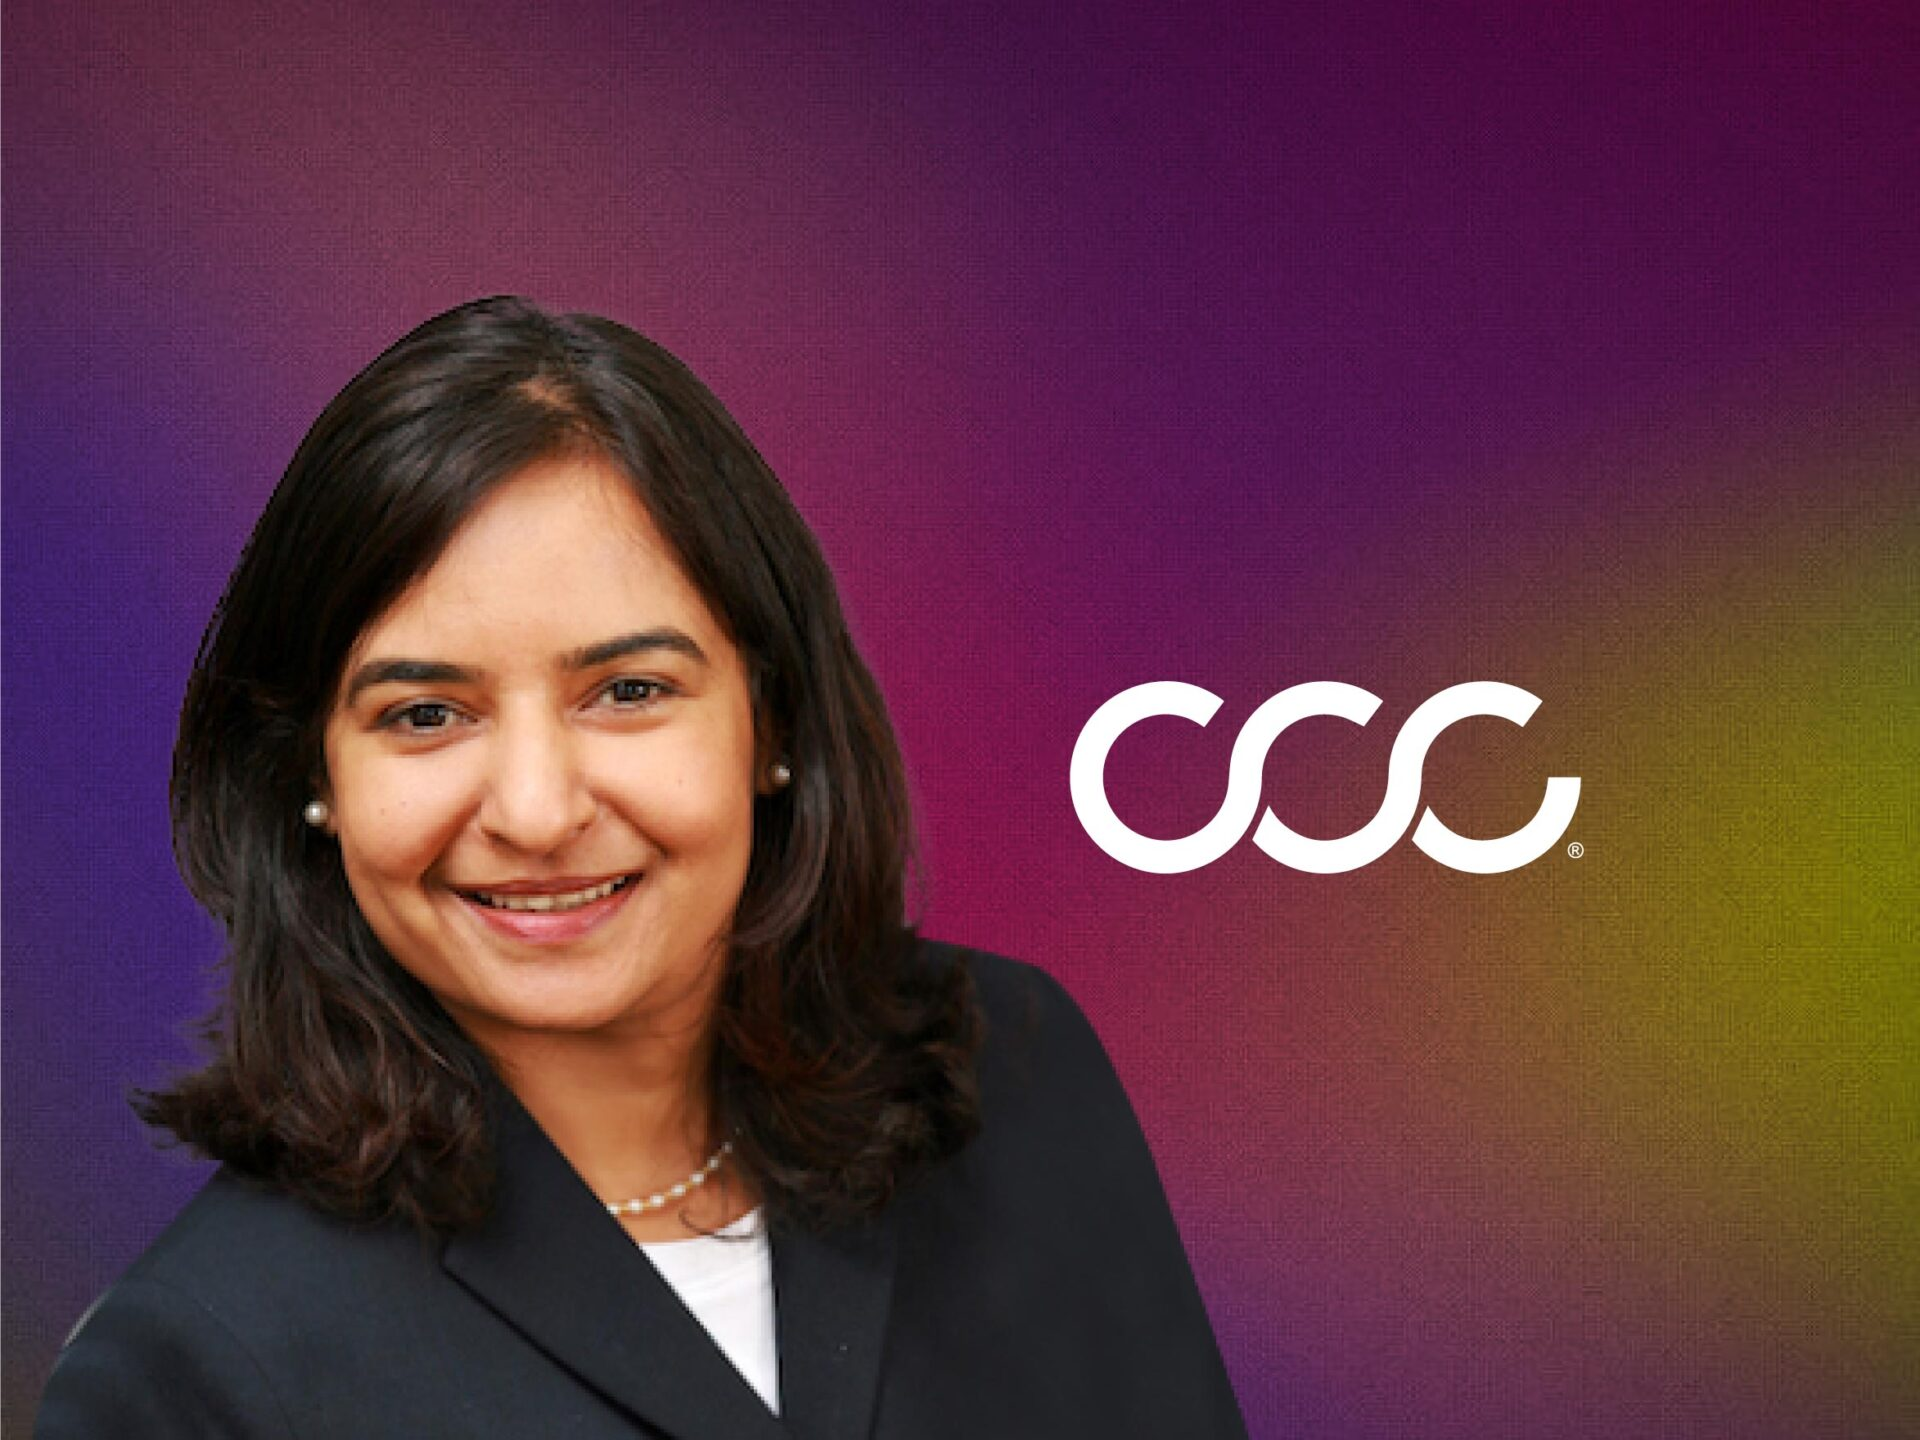 Global Fintech Interview with Shivani Govil, CPO at CCC Information Services